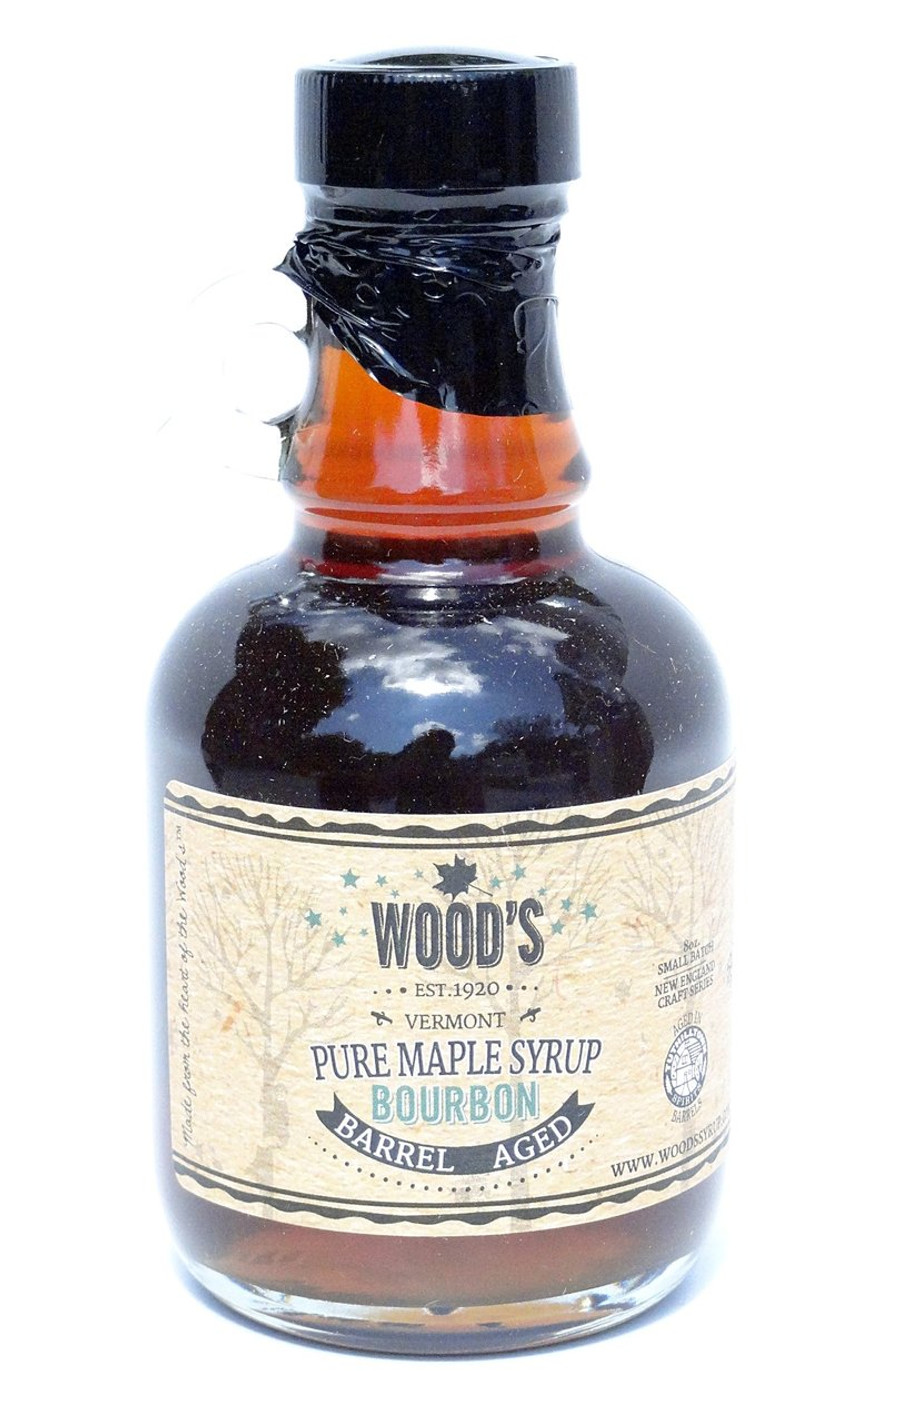 Wood's Bourbon Barrel Aged Pure Maple Syrup